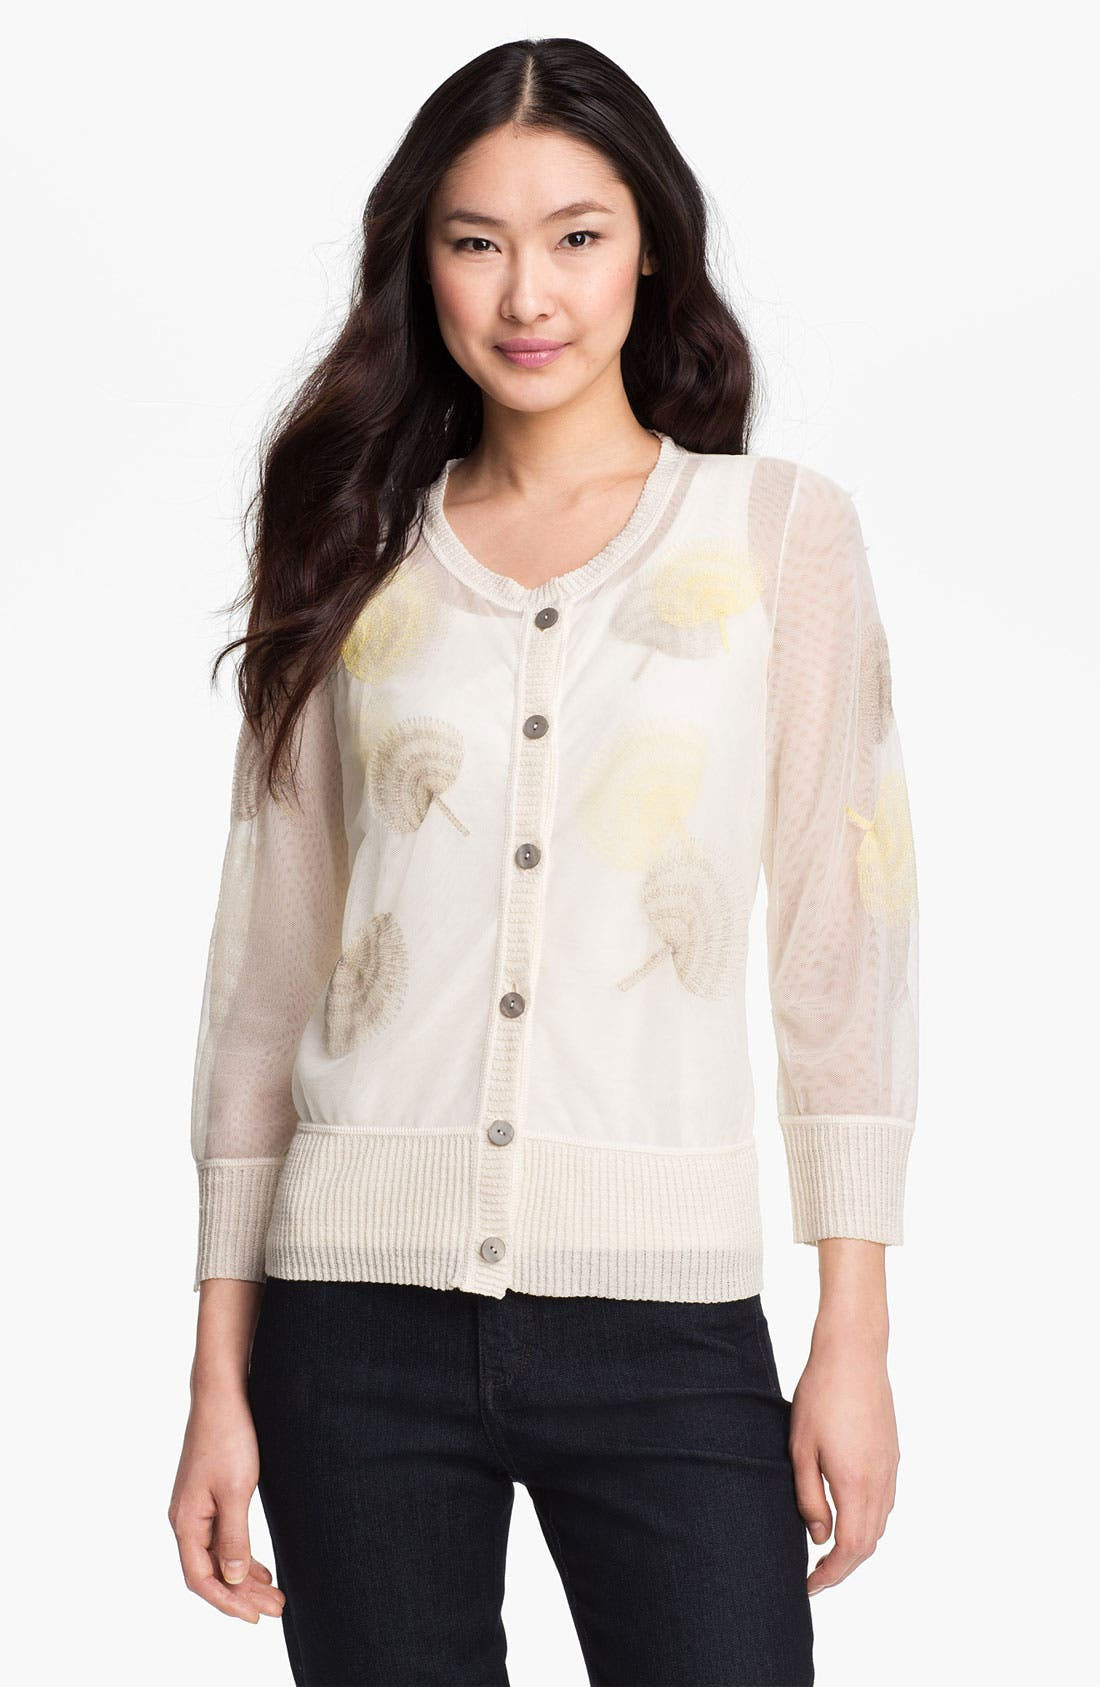 Alternate Image 1 Selected - Nic + Zoe Fan Print Sheer Mesh Cardigan